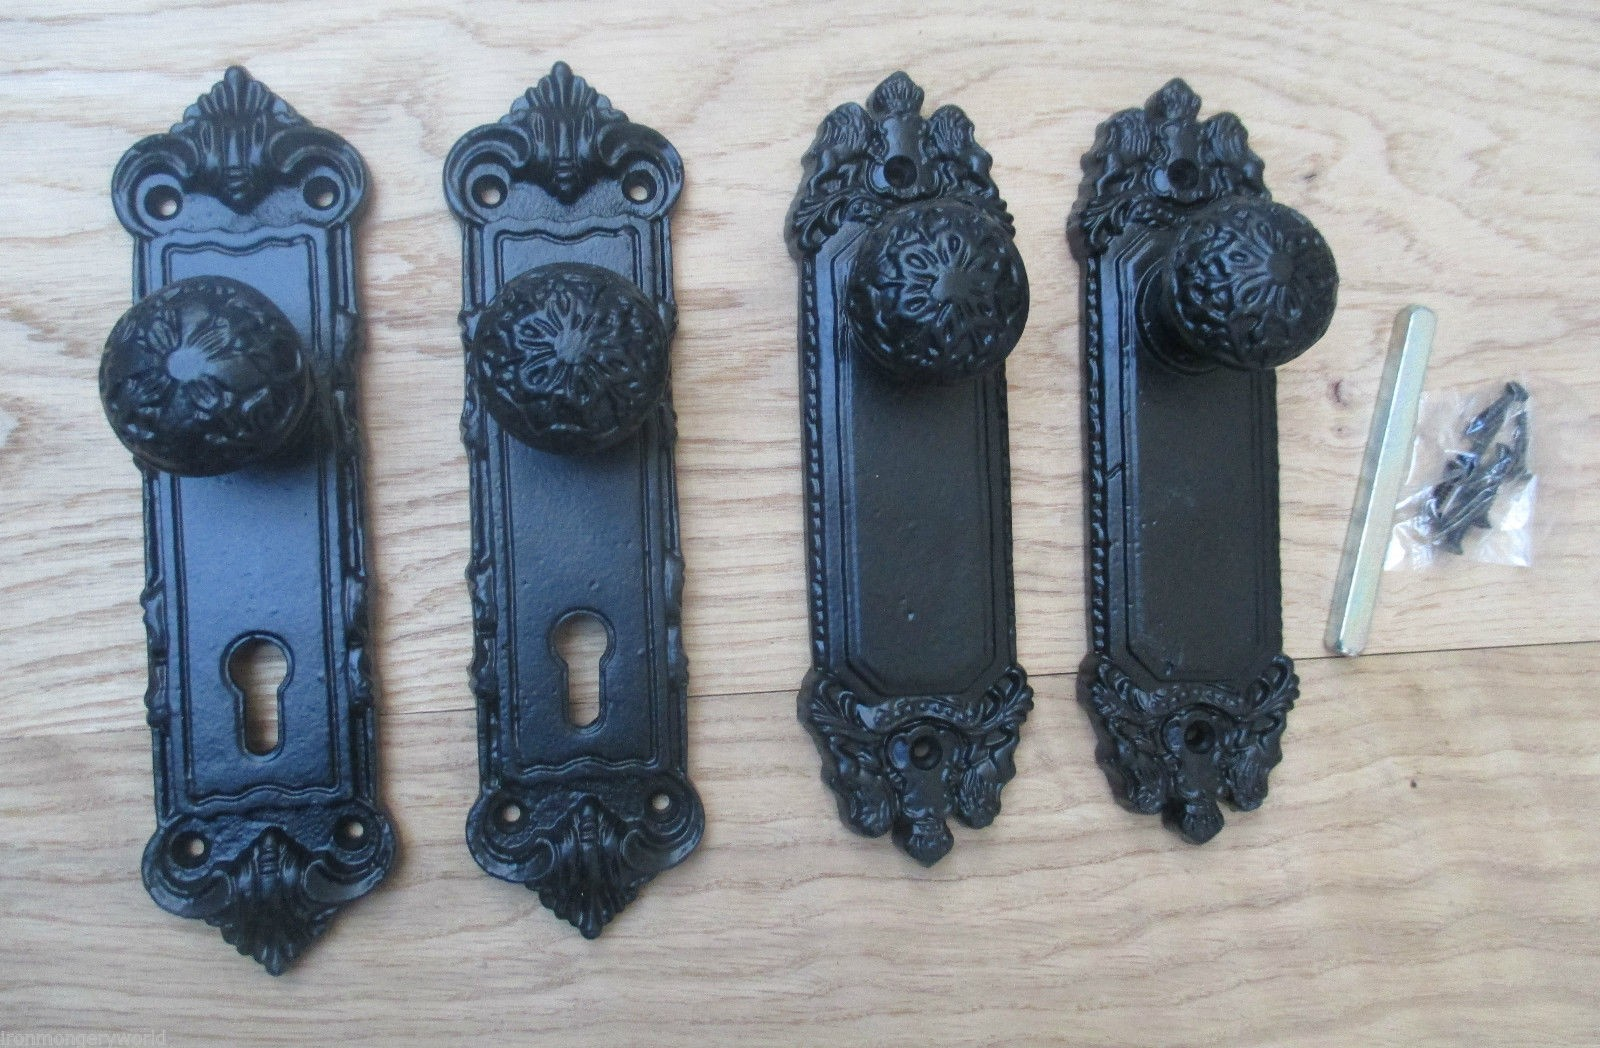 Sprung Cast Iron Shabby Chic Lever Door Handle Knobs On